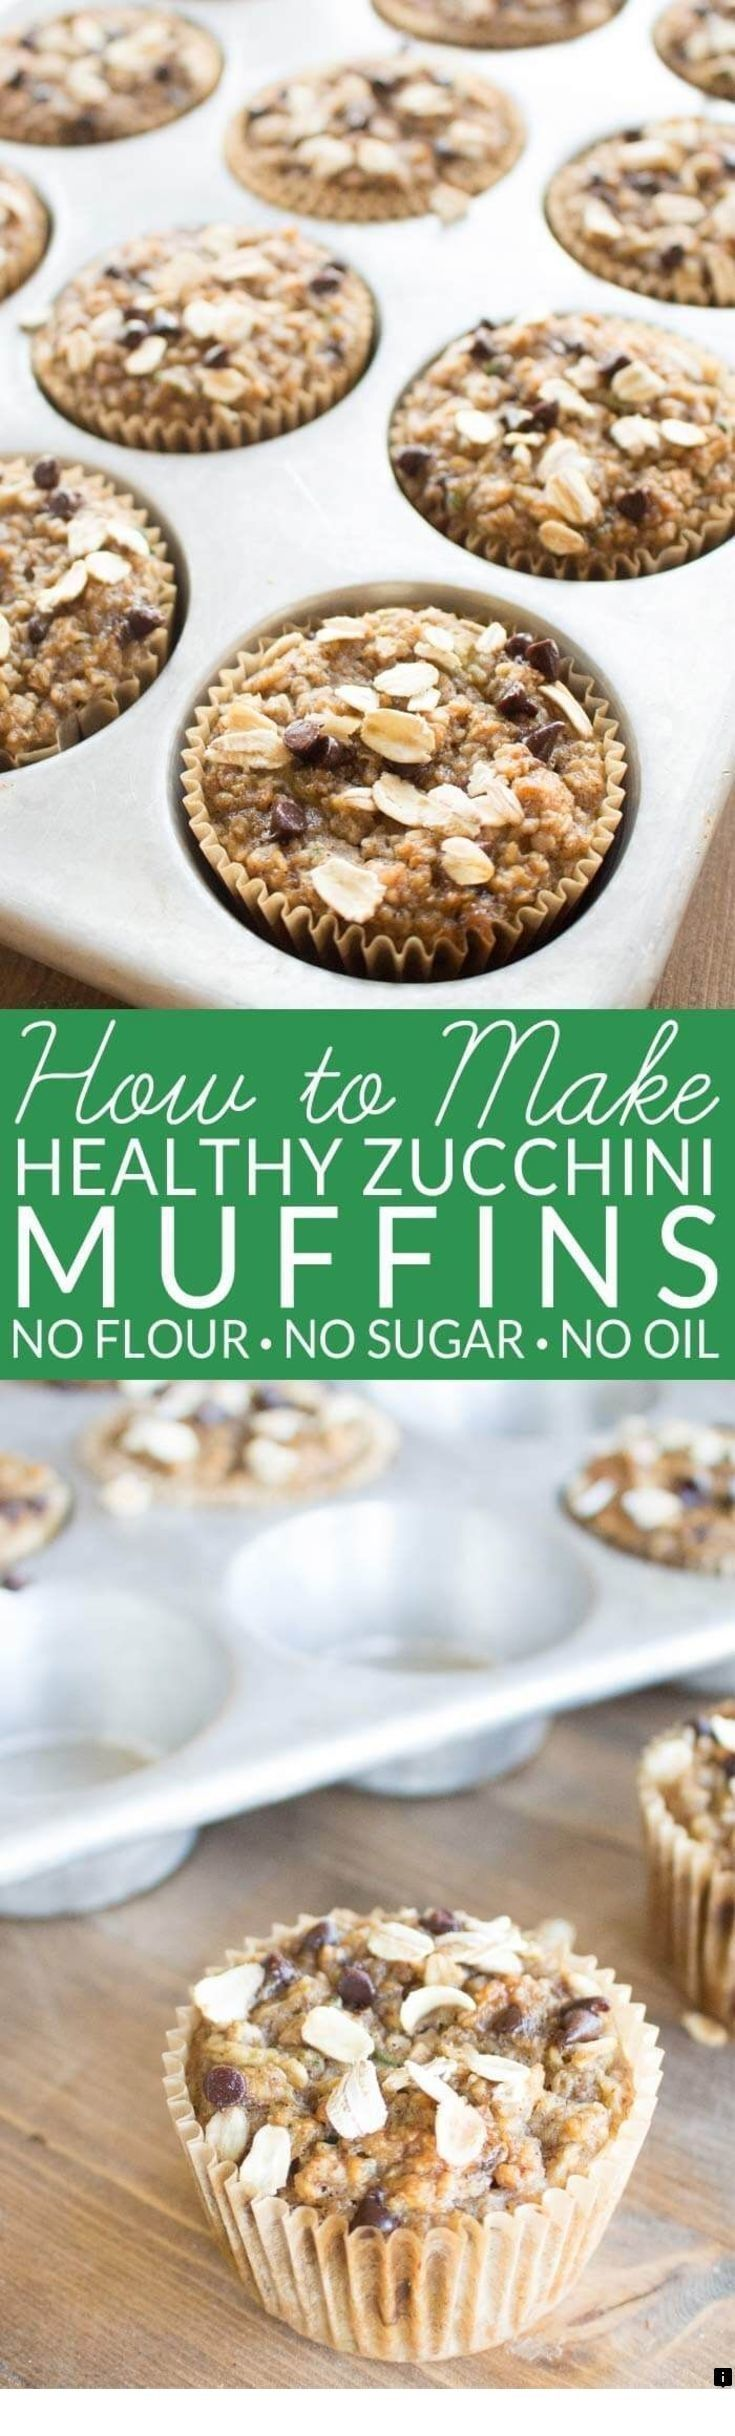 Click on the link to learn more gluten free desserts